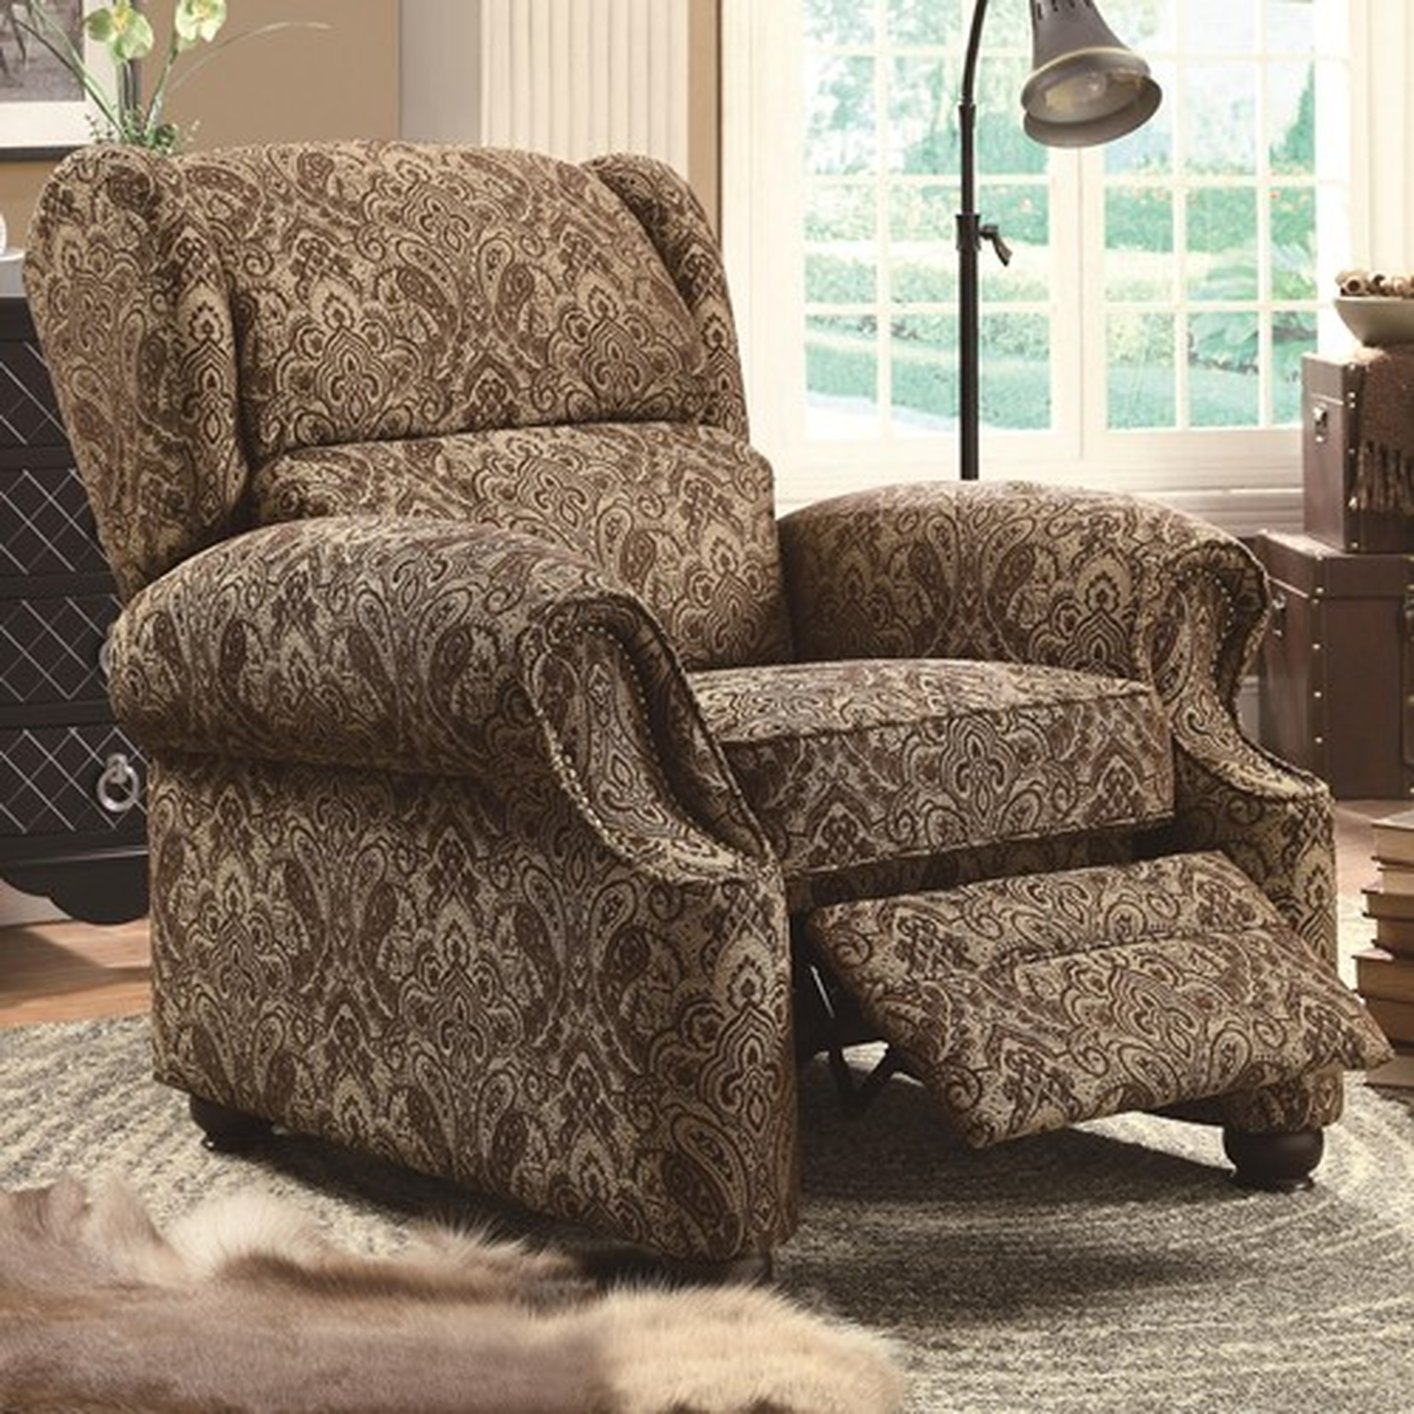 Brown Fabric Reclining Chair Brown Fabric Reclining Chair ... & Brown Fabric Reclining Chair - Steal-A-Sofa Furniture Outlet Los ... islam-shia.org